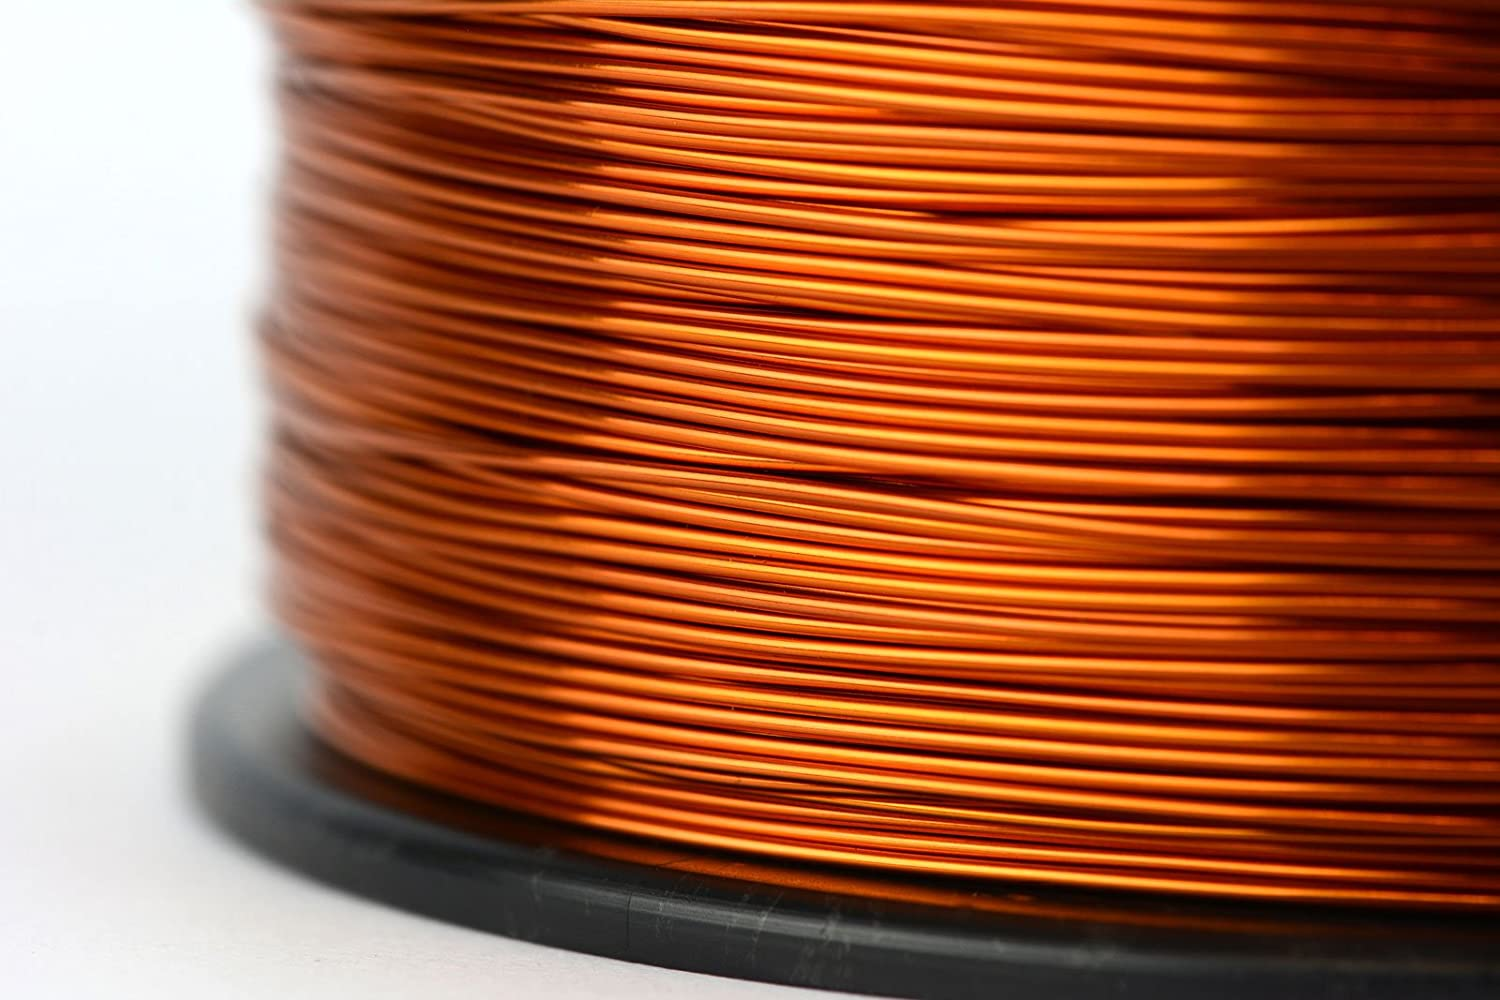 Amazon.com: TEMCo 8 AWG Copper Magnet Wire - 1 lb 20 ft 200°C ...